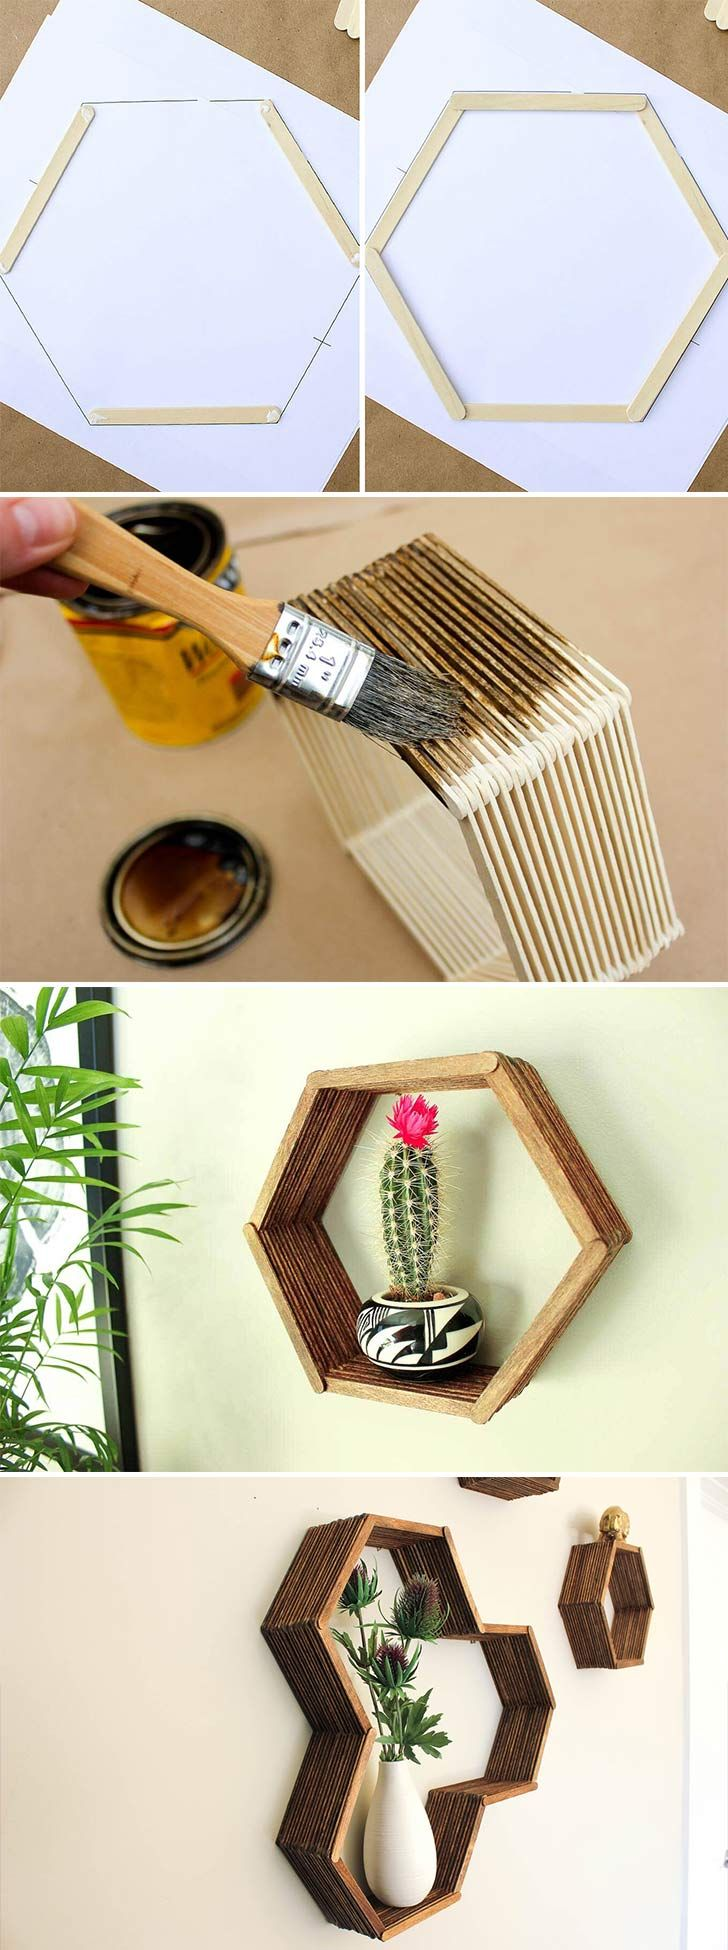 40 Amazing DIY Home Decor Ideas That Wont Look DIYed